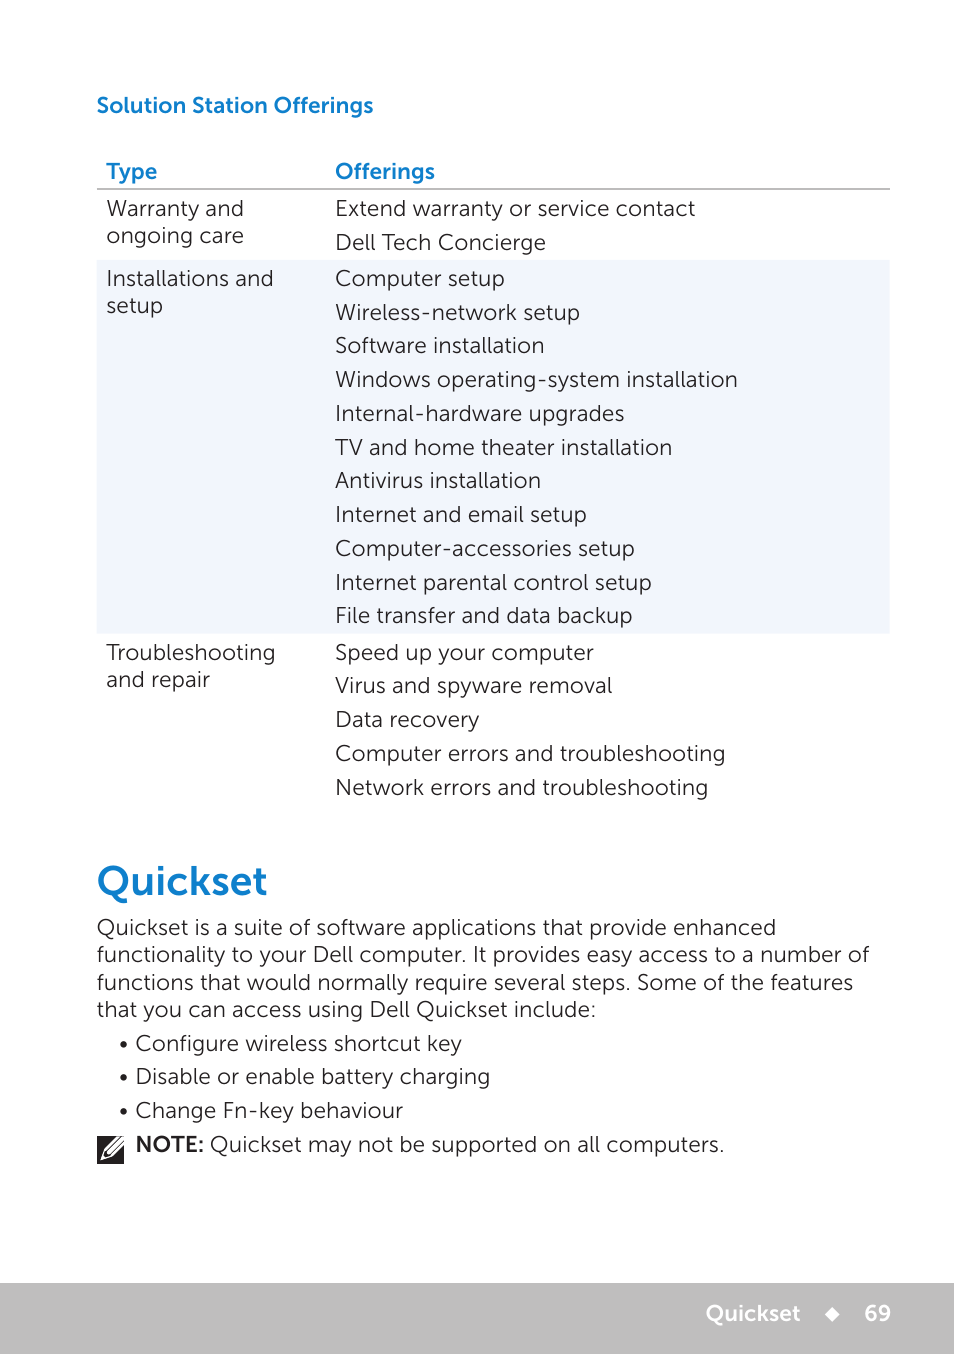 Solution station offerings, Quickset, Quickset 69 | Dell Inspiron 11